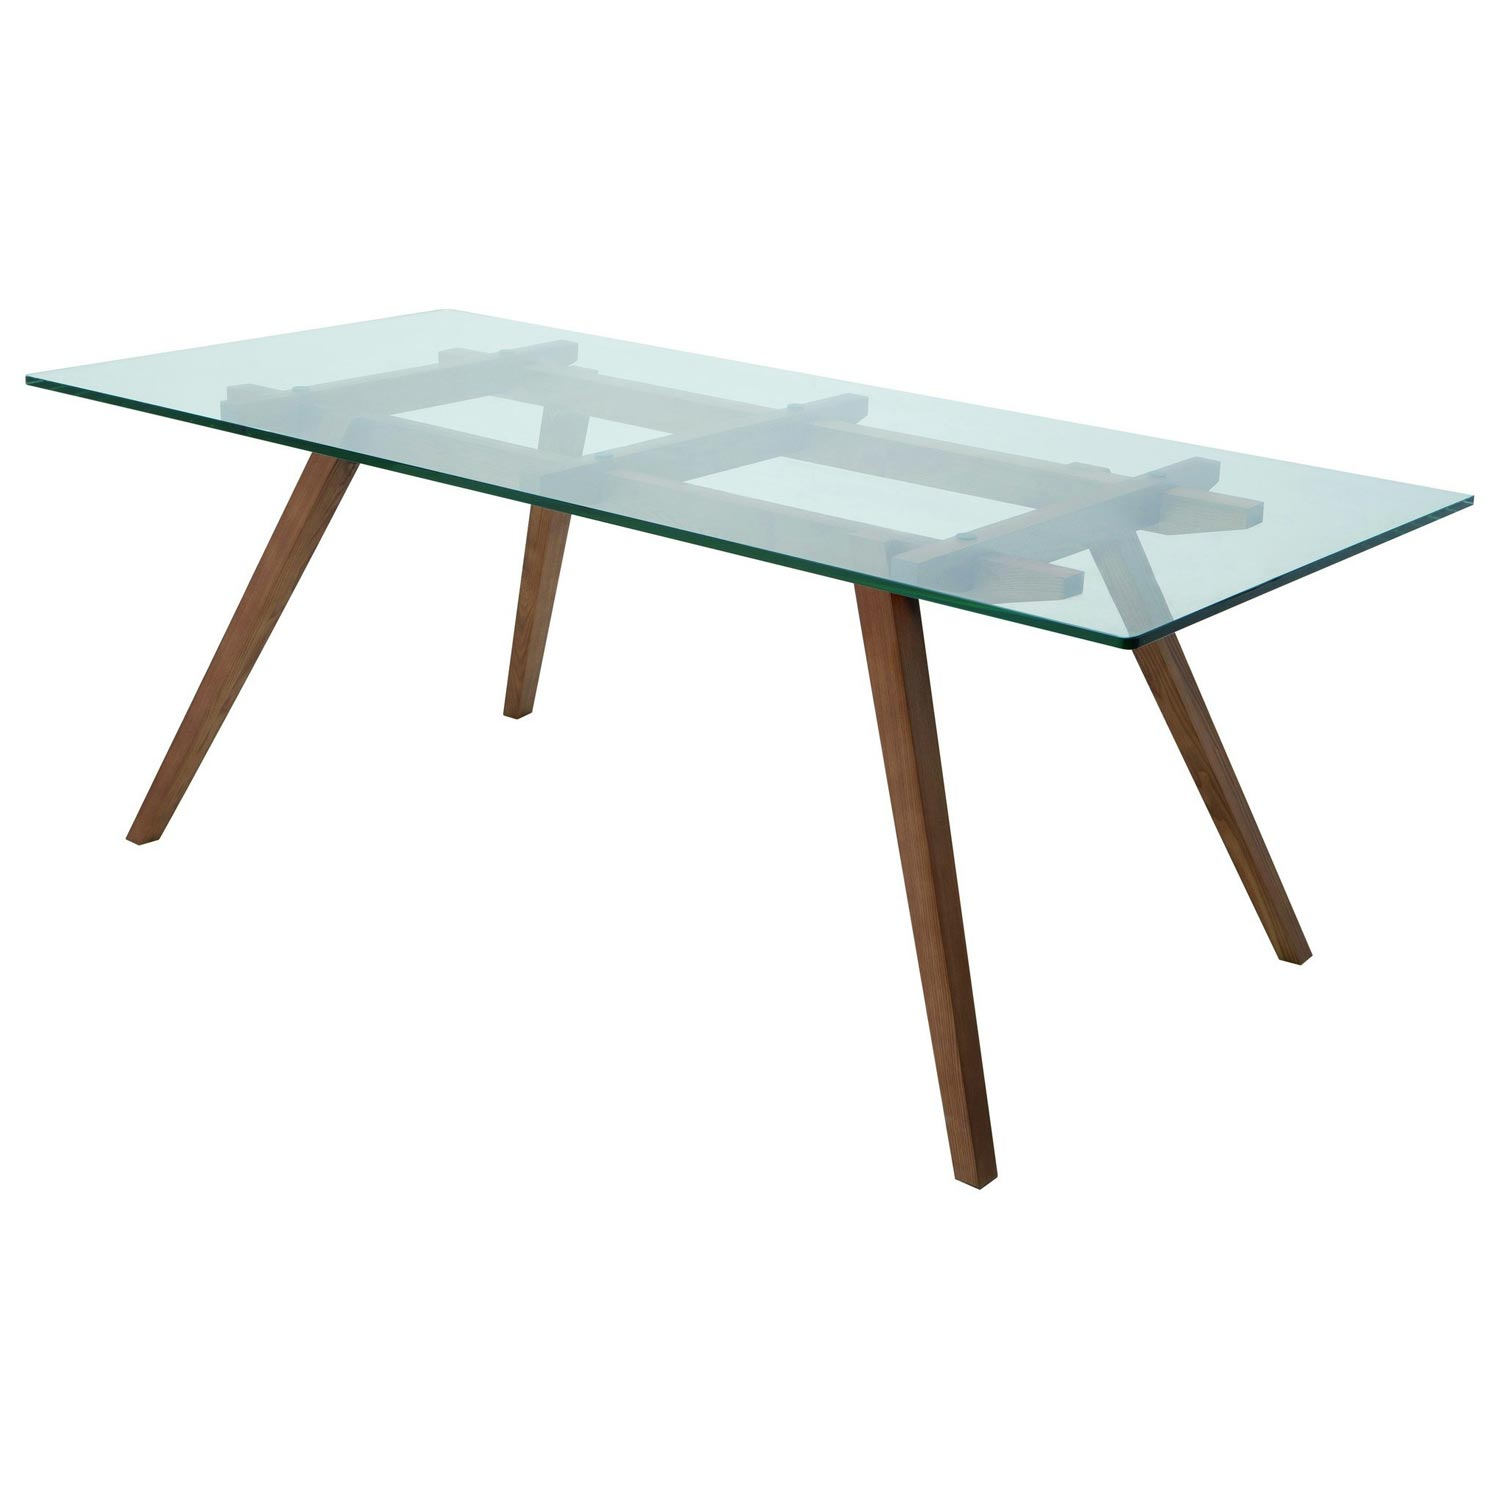 Franz Contemporary Glass Dining Table - Tempered Glass, Walnut